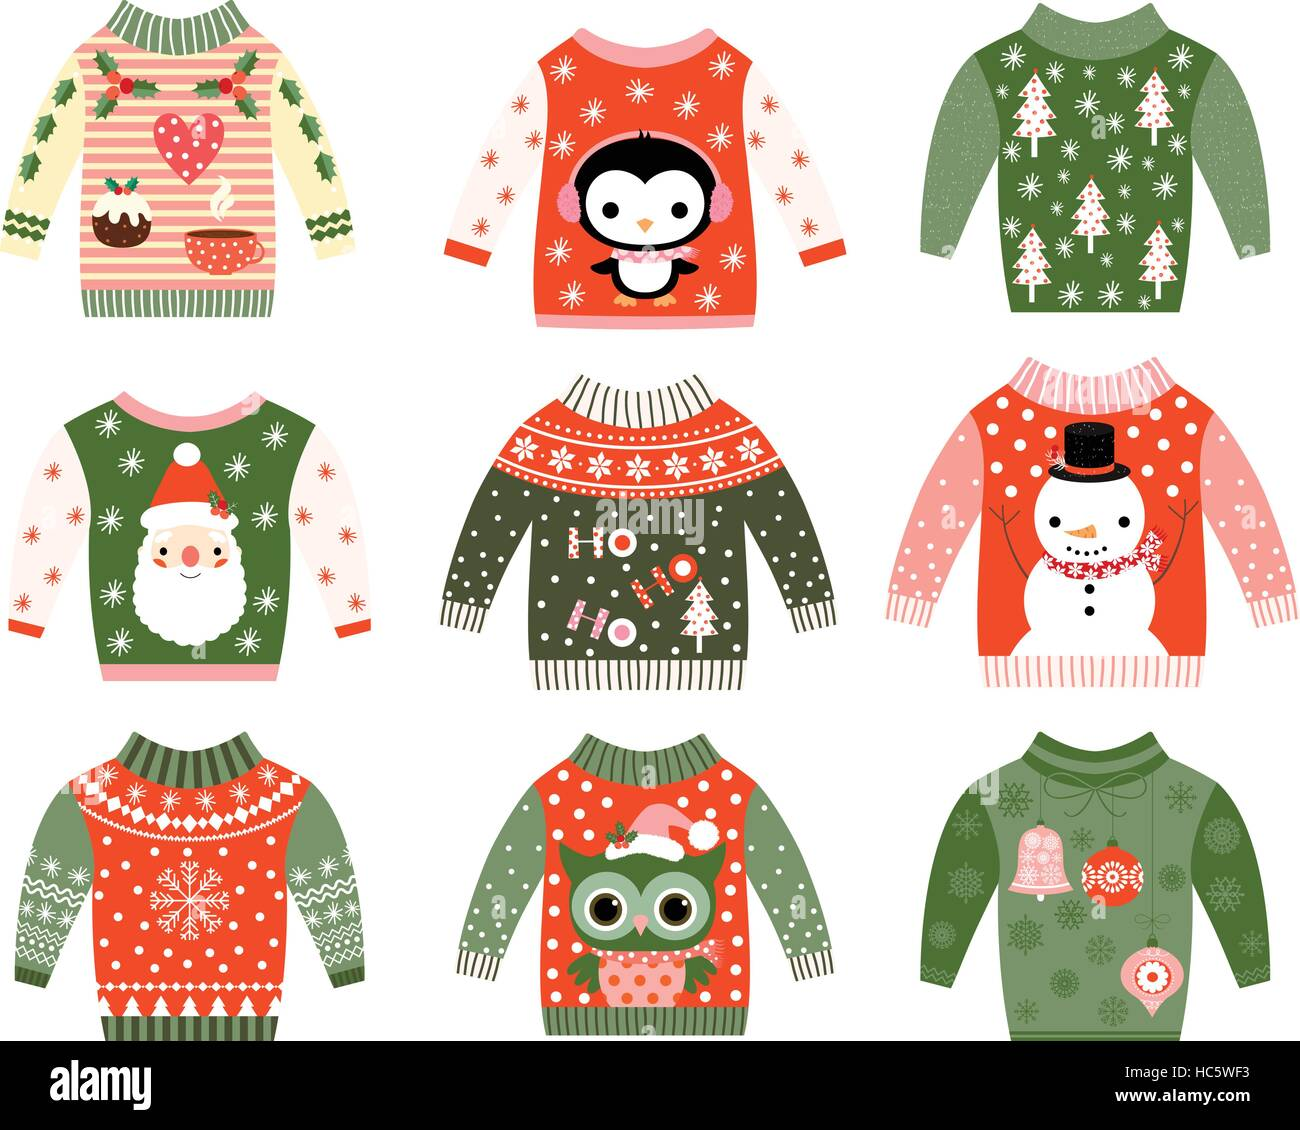 Cute ugly Christmas sweater designs vector set, Sweater party ...